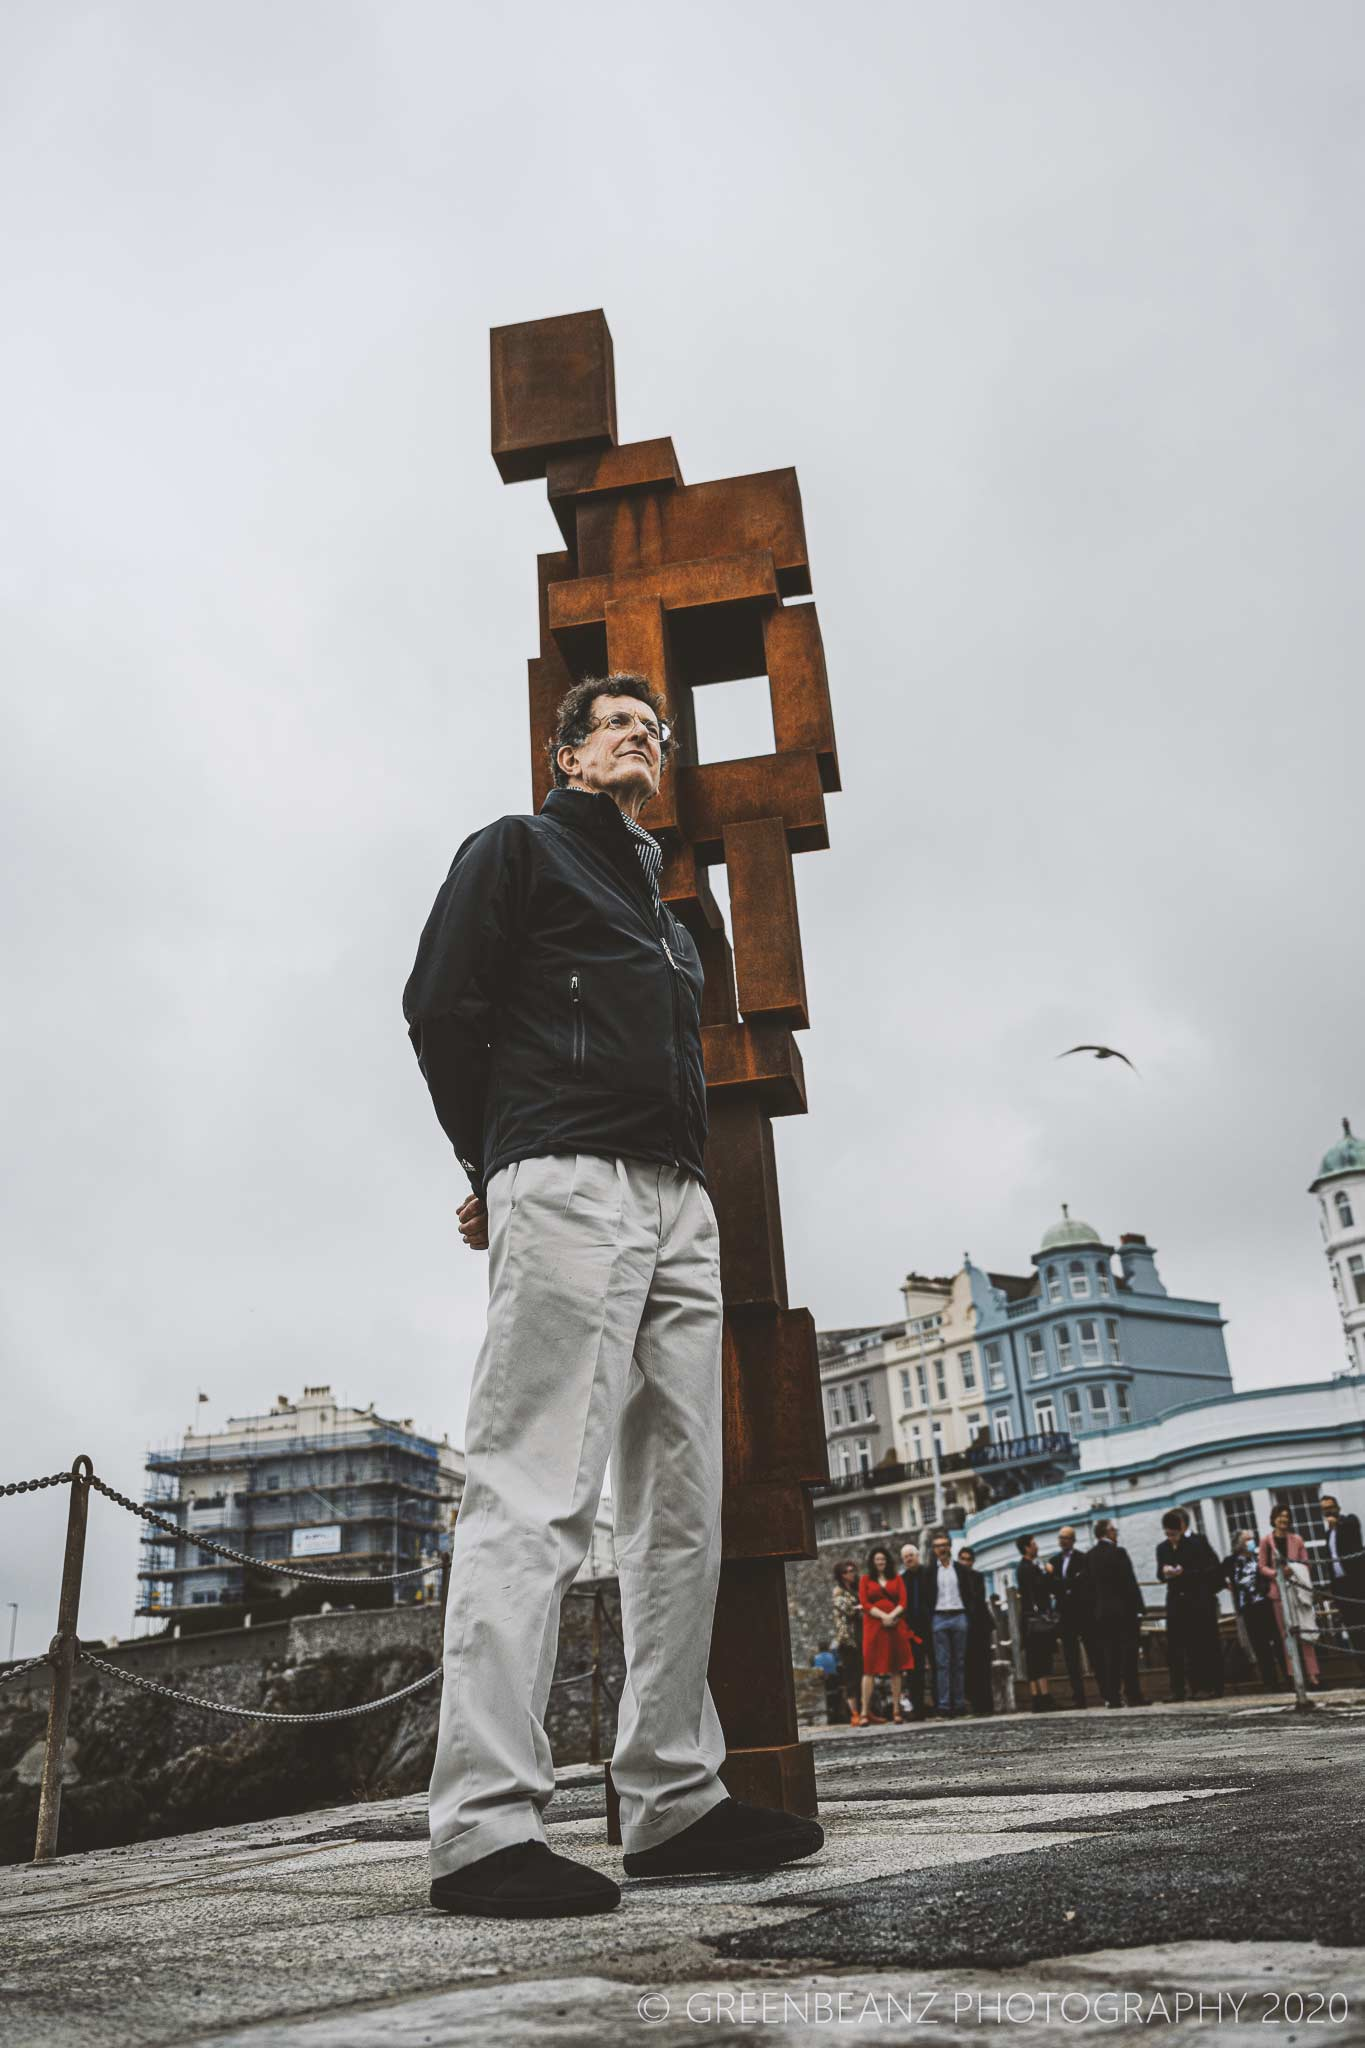 Sir Antony Gormley in Plymouth with his work 'LOOK II' 22/09/2020